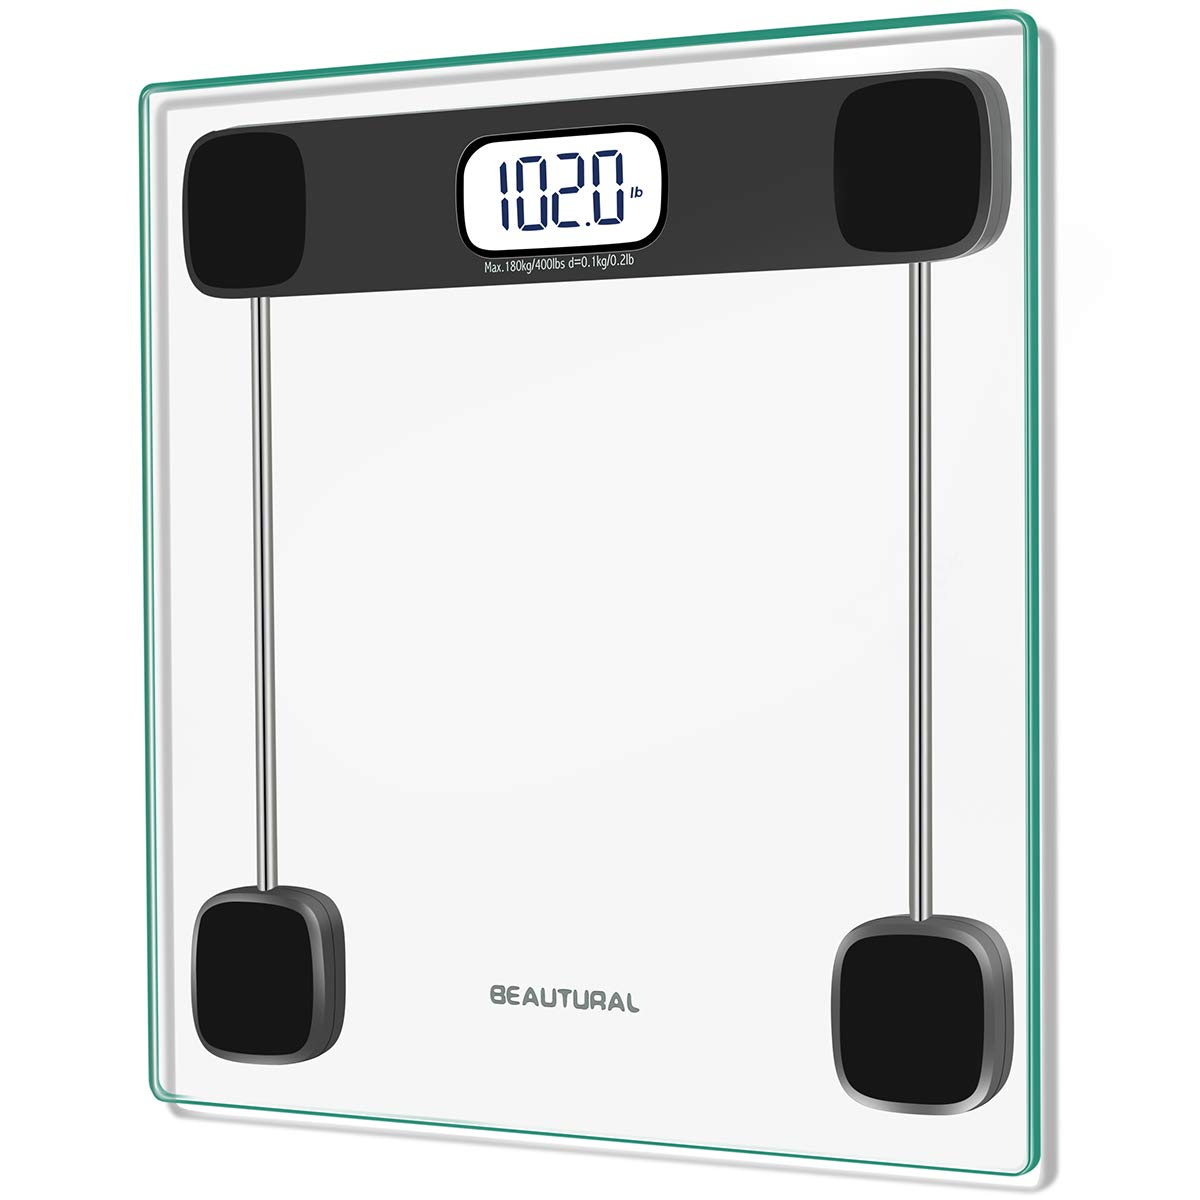 Beautural Precision Digital Body Weight Bathroom Scale with Lighted Display, Step-On Technology, 400 lb